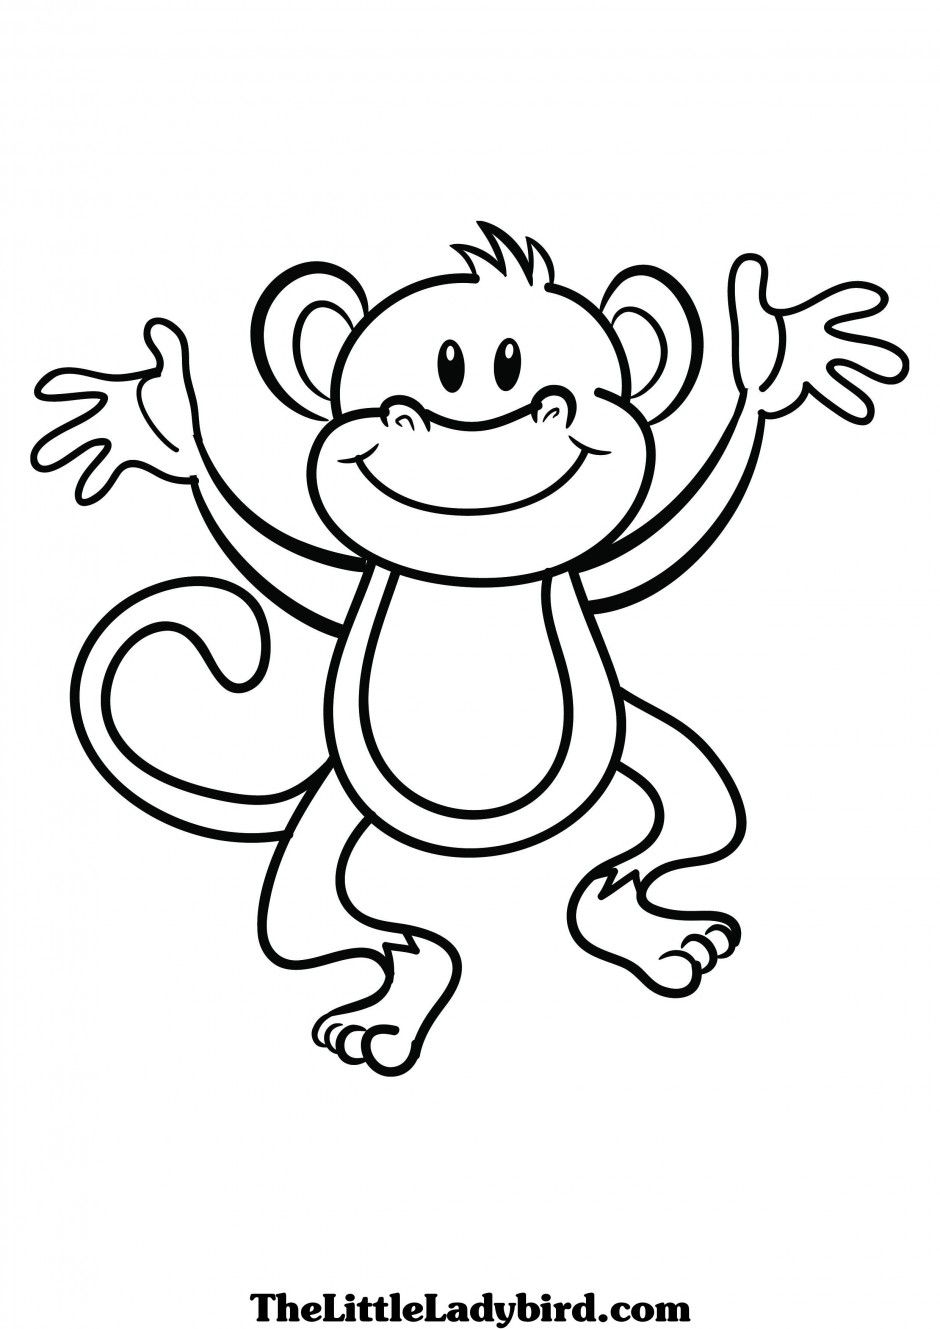 Line Drawing Monkey : Cute monkey clip art black and white coloring pages